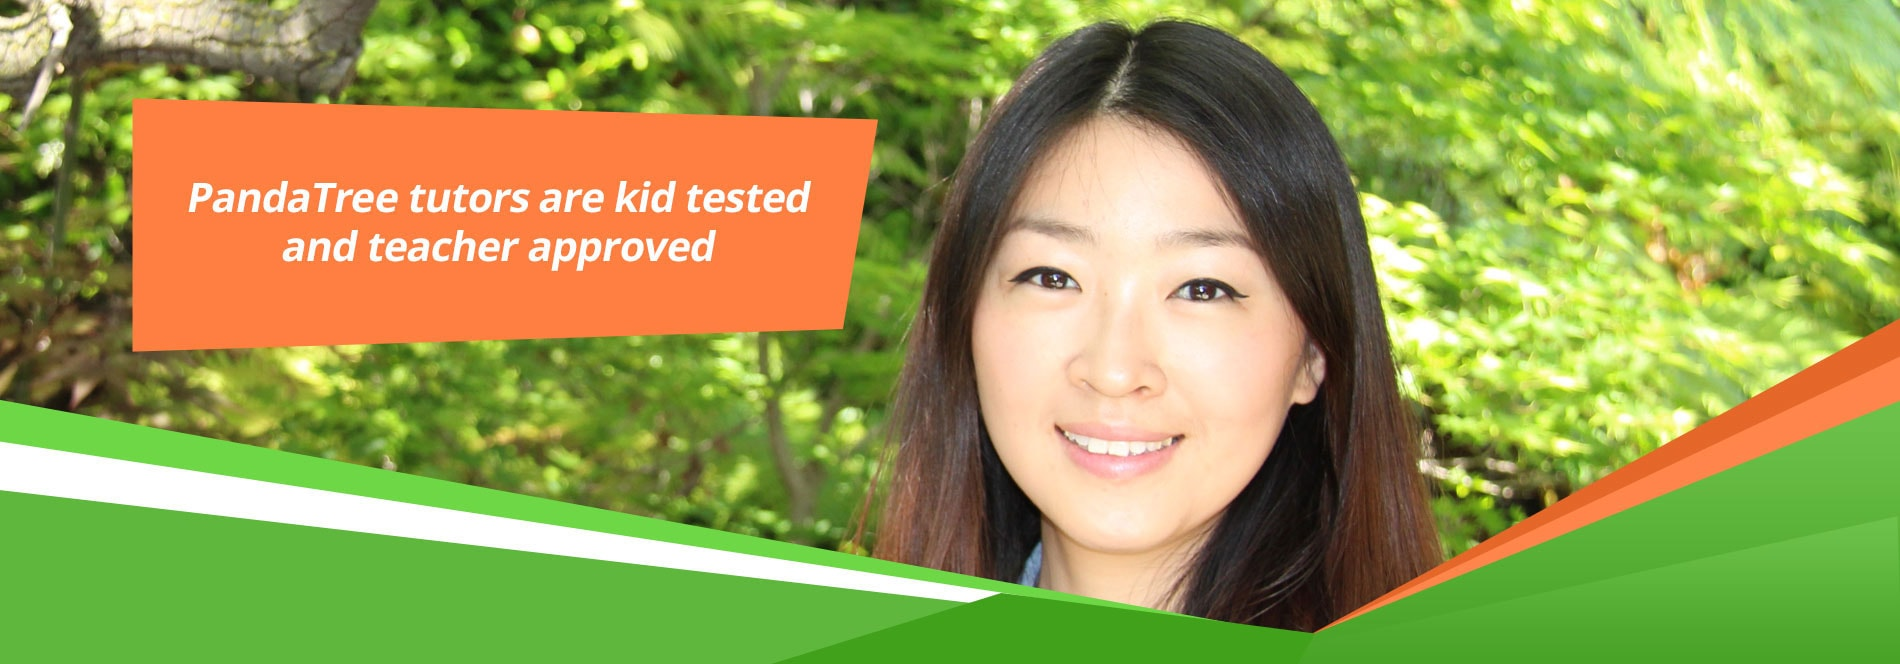 PandaTree foreign language tutors are kid tested and teacher approved.